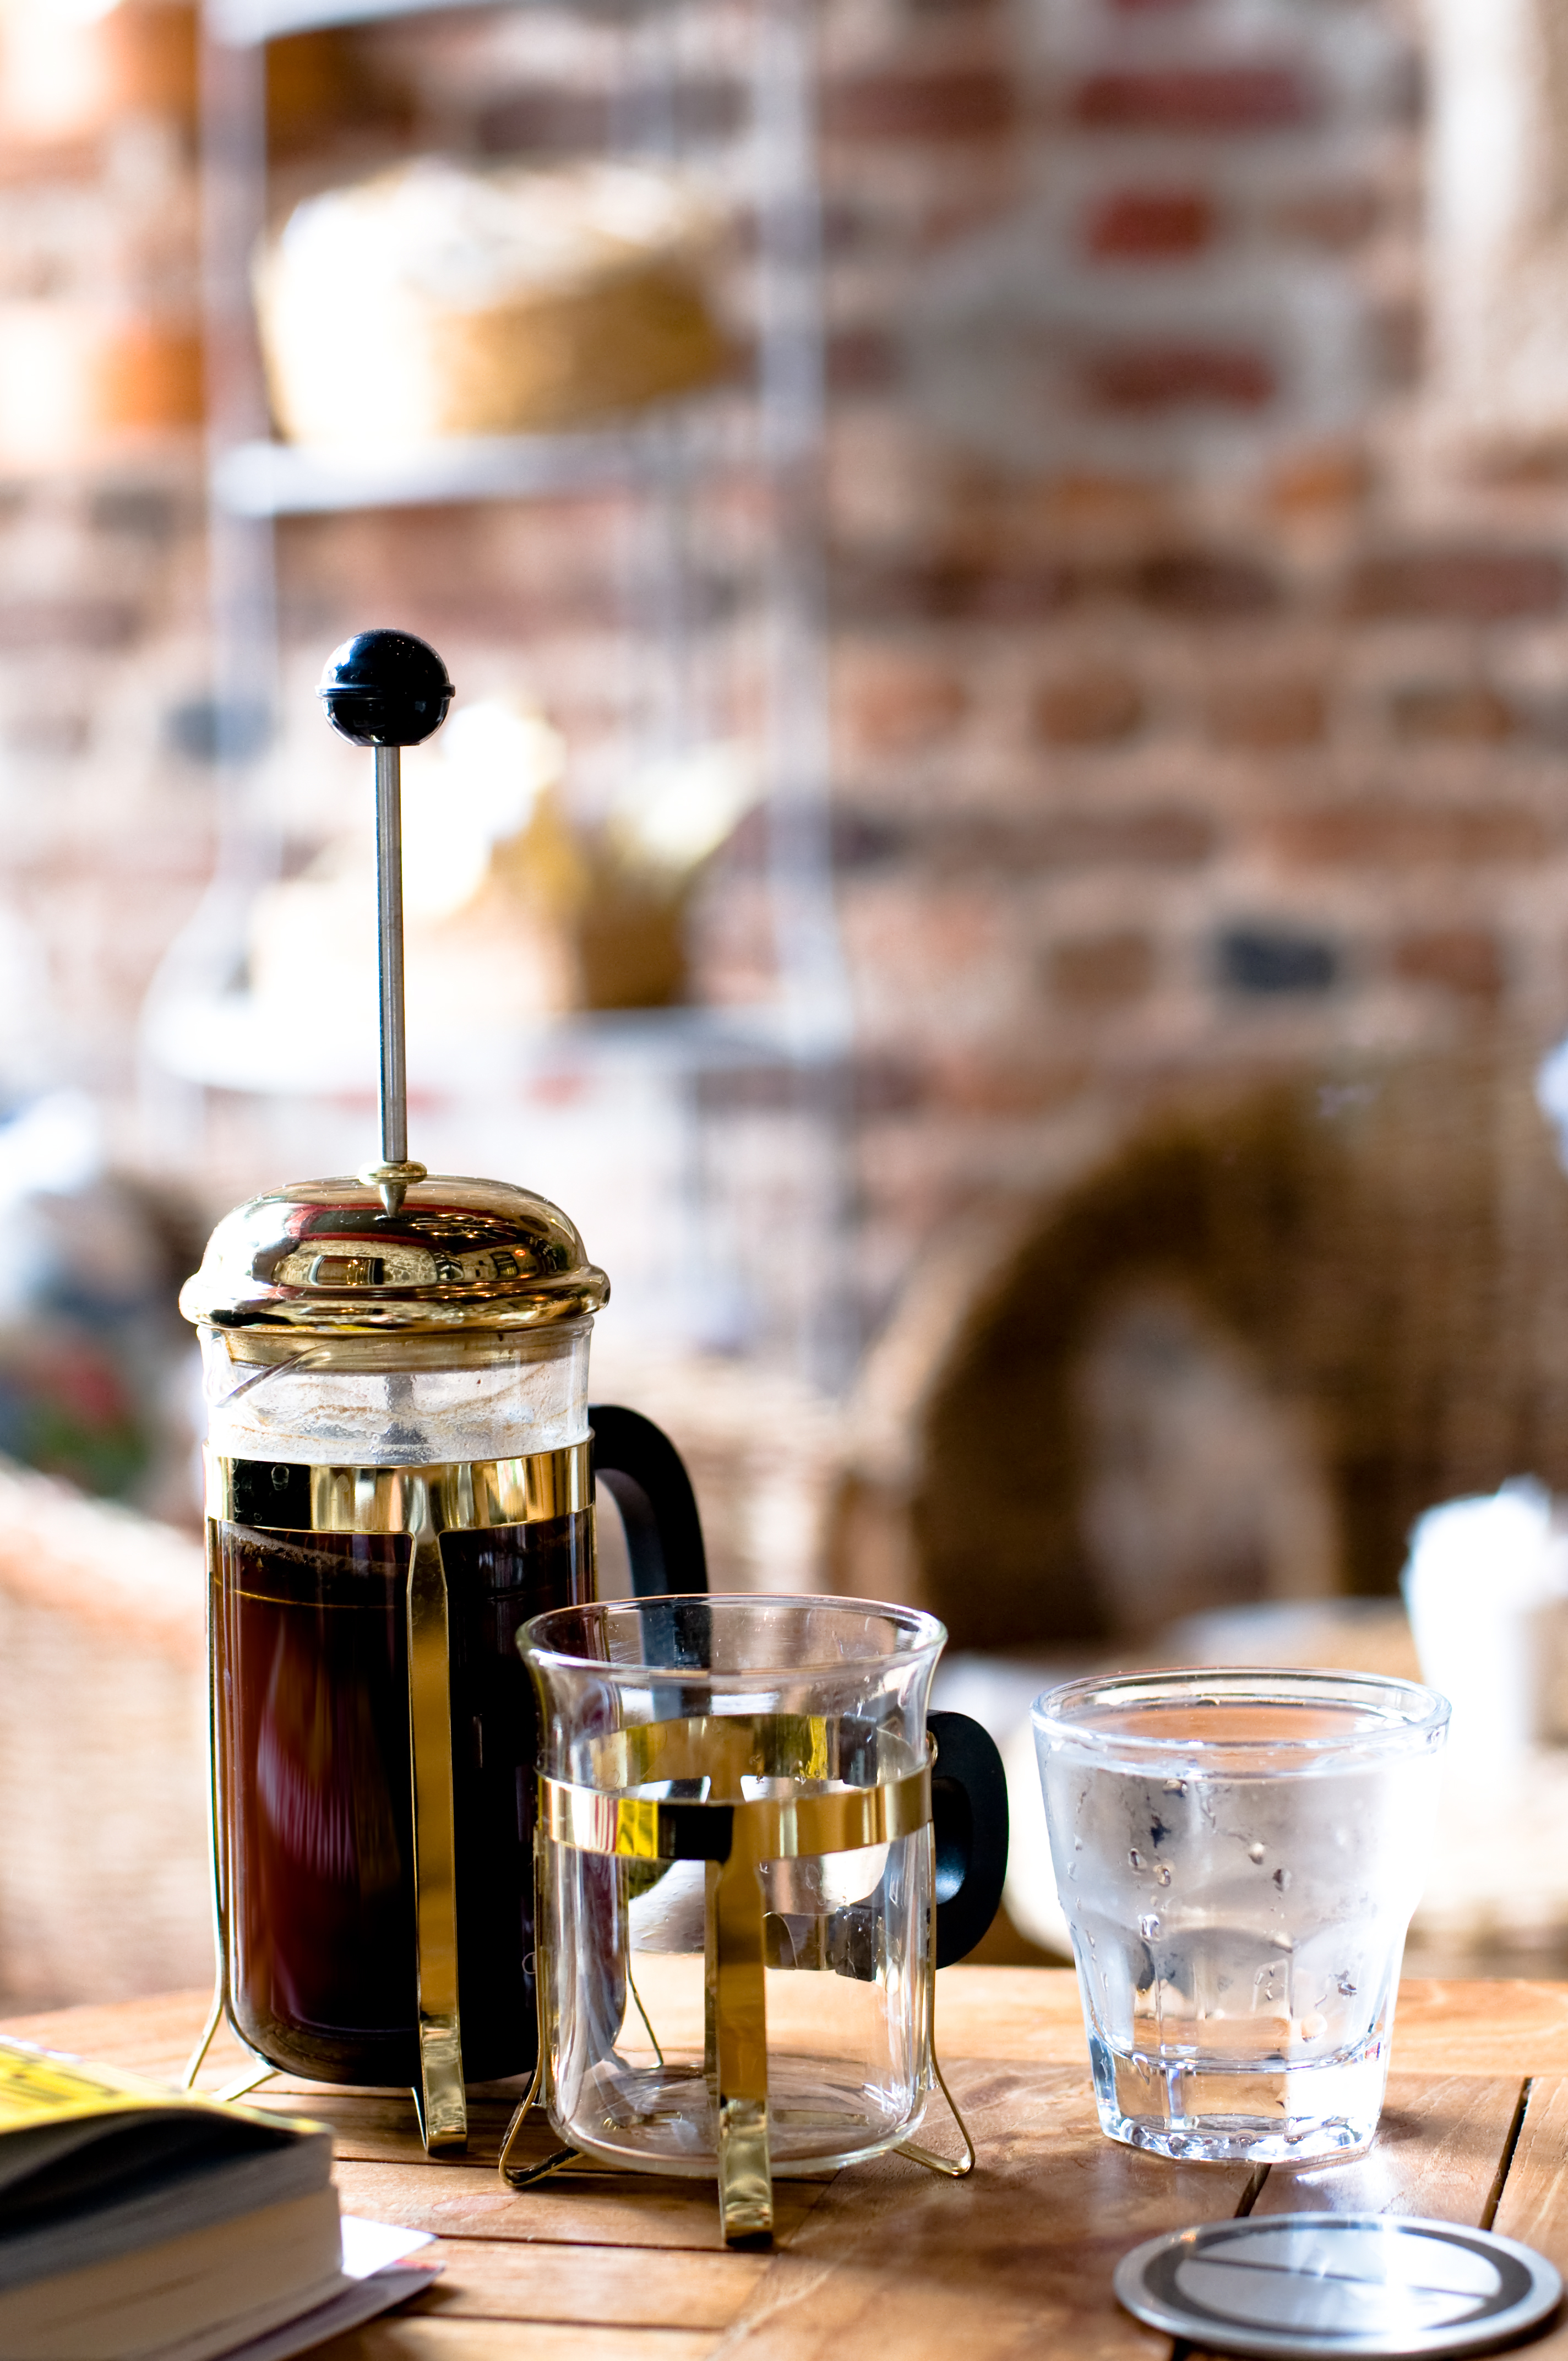 Bed bath beyond french press - How To Make Your Own Cold Brew Coffee With A French Press Royal